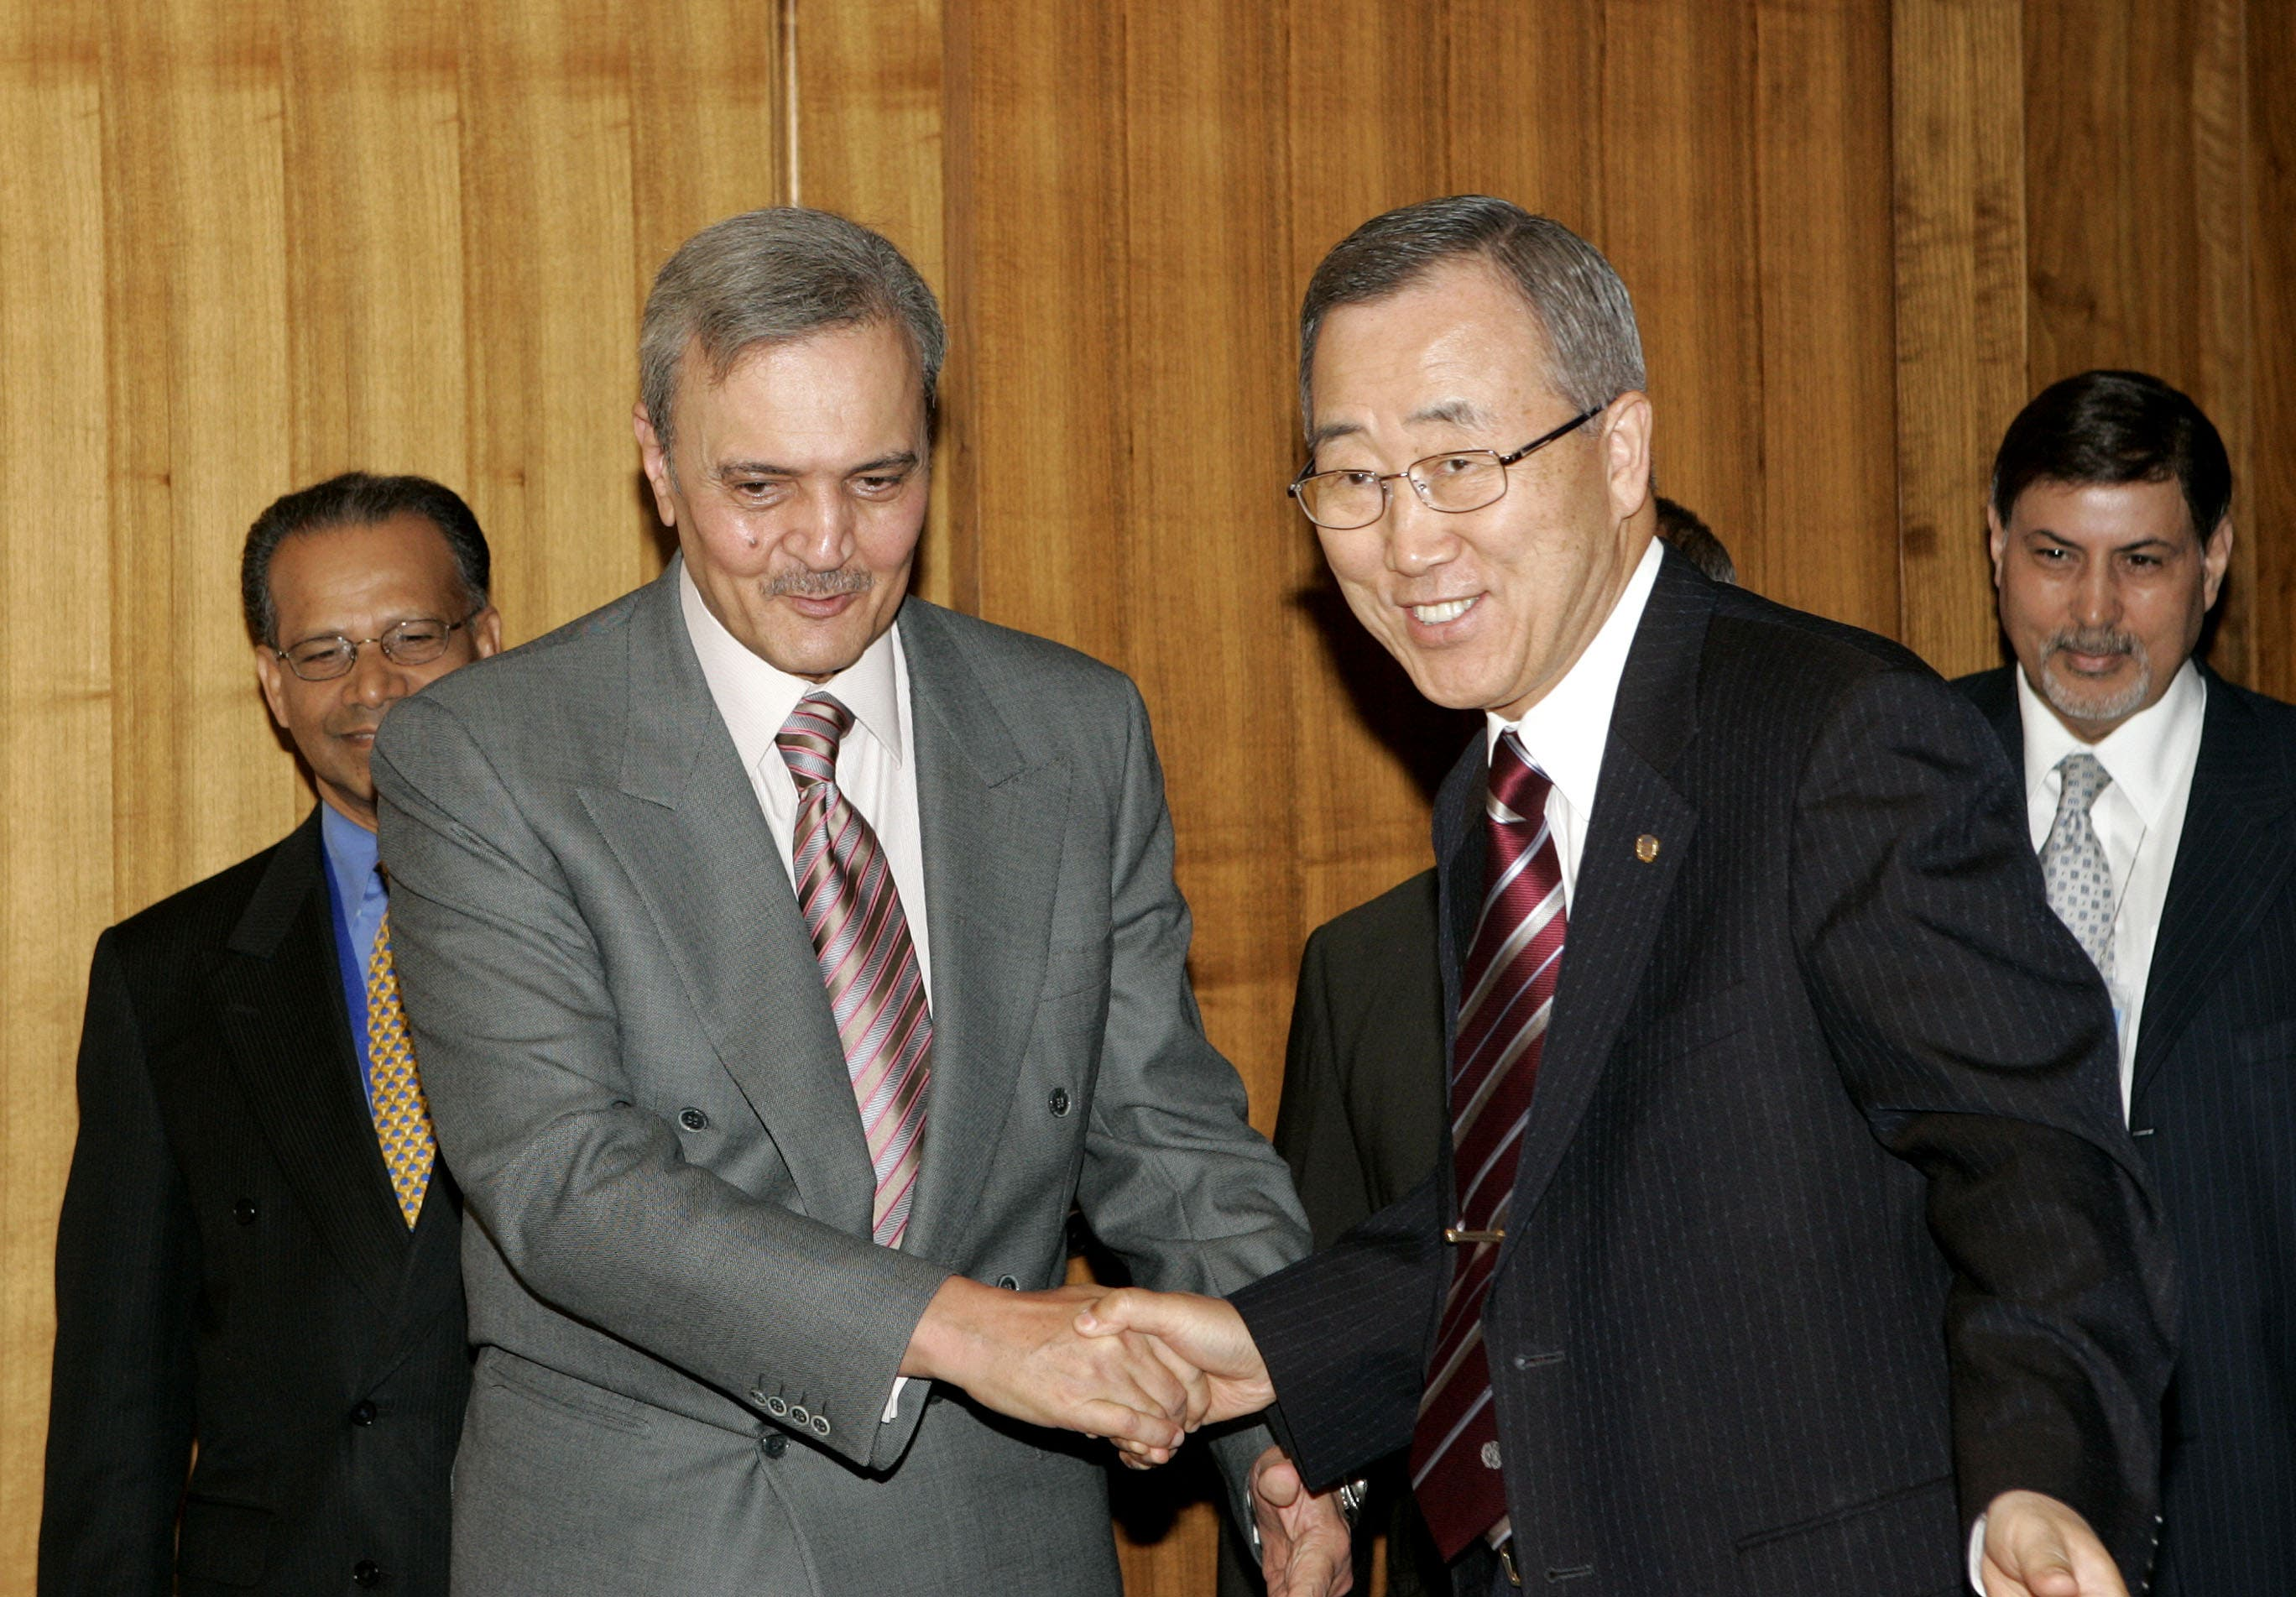 United Nations Secretary General Ban Ki-moon, right, greets Prince Saud Al-Faisal, Foreign Affairs minister of Saudi Arabia at U.N. headquarters in New York Thursday, Sept. 25, 2008. (AP)